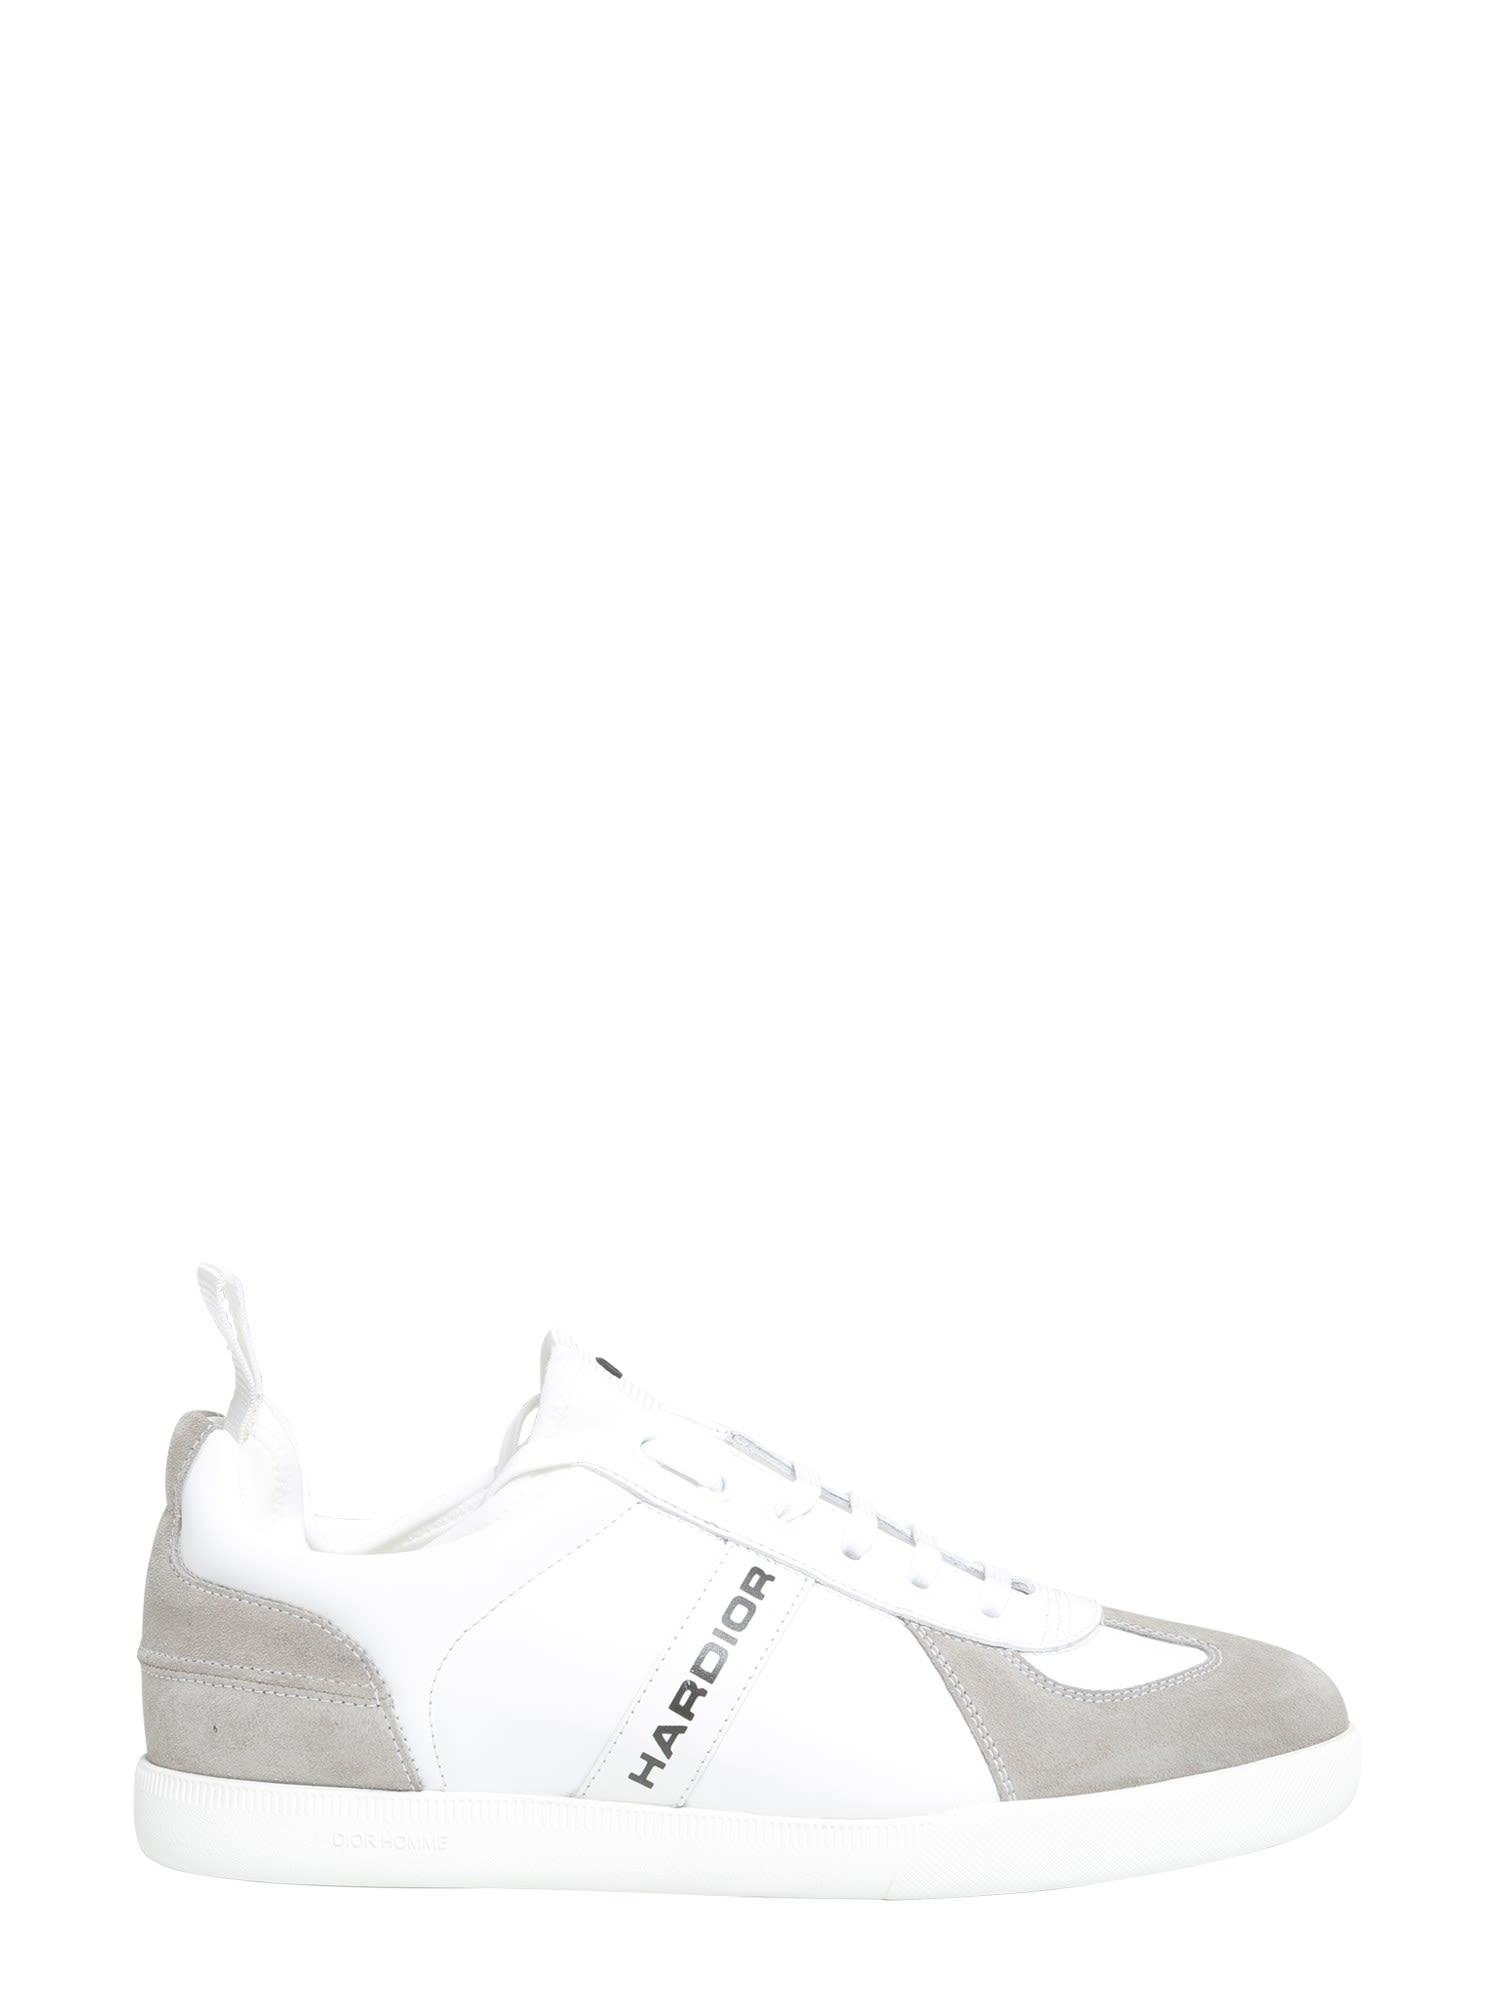 Dior Homme Leather Sneakers In Bianco